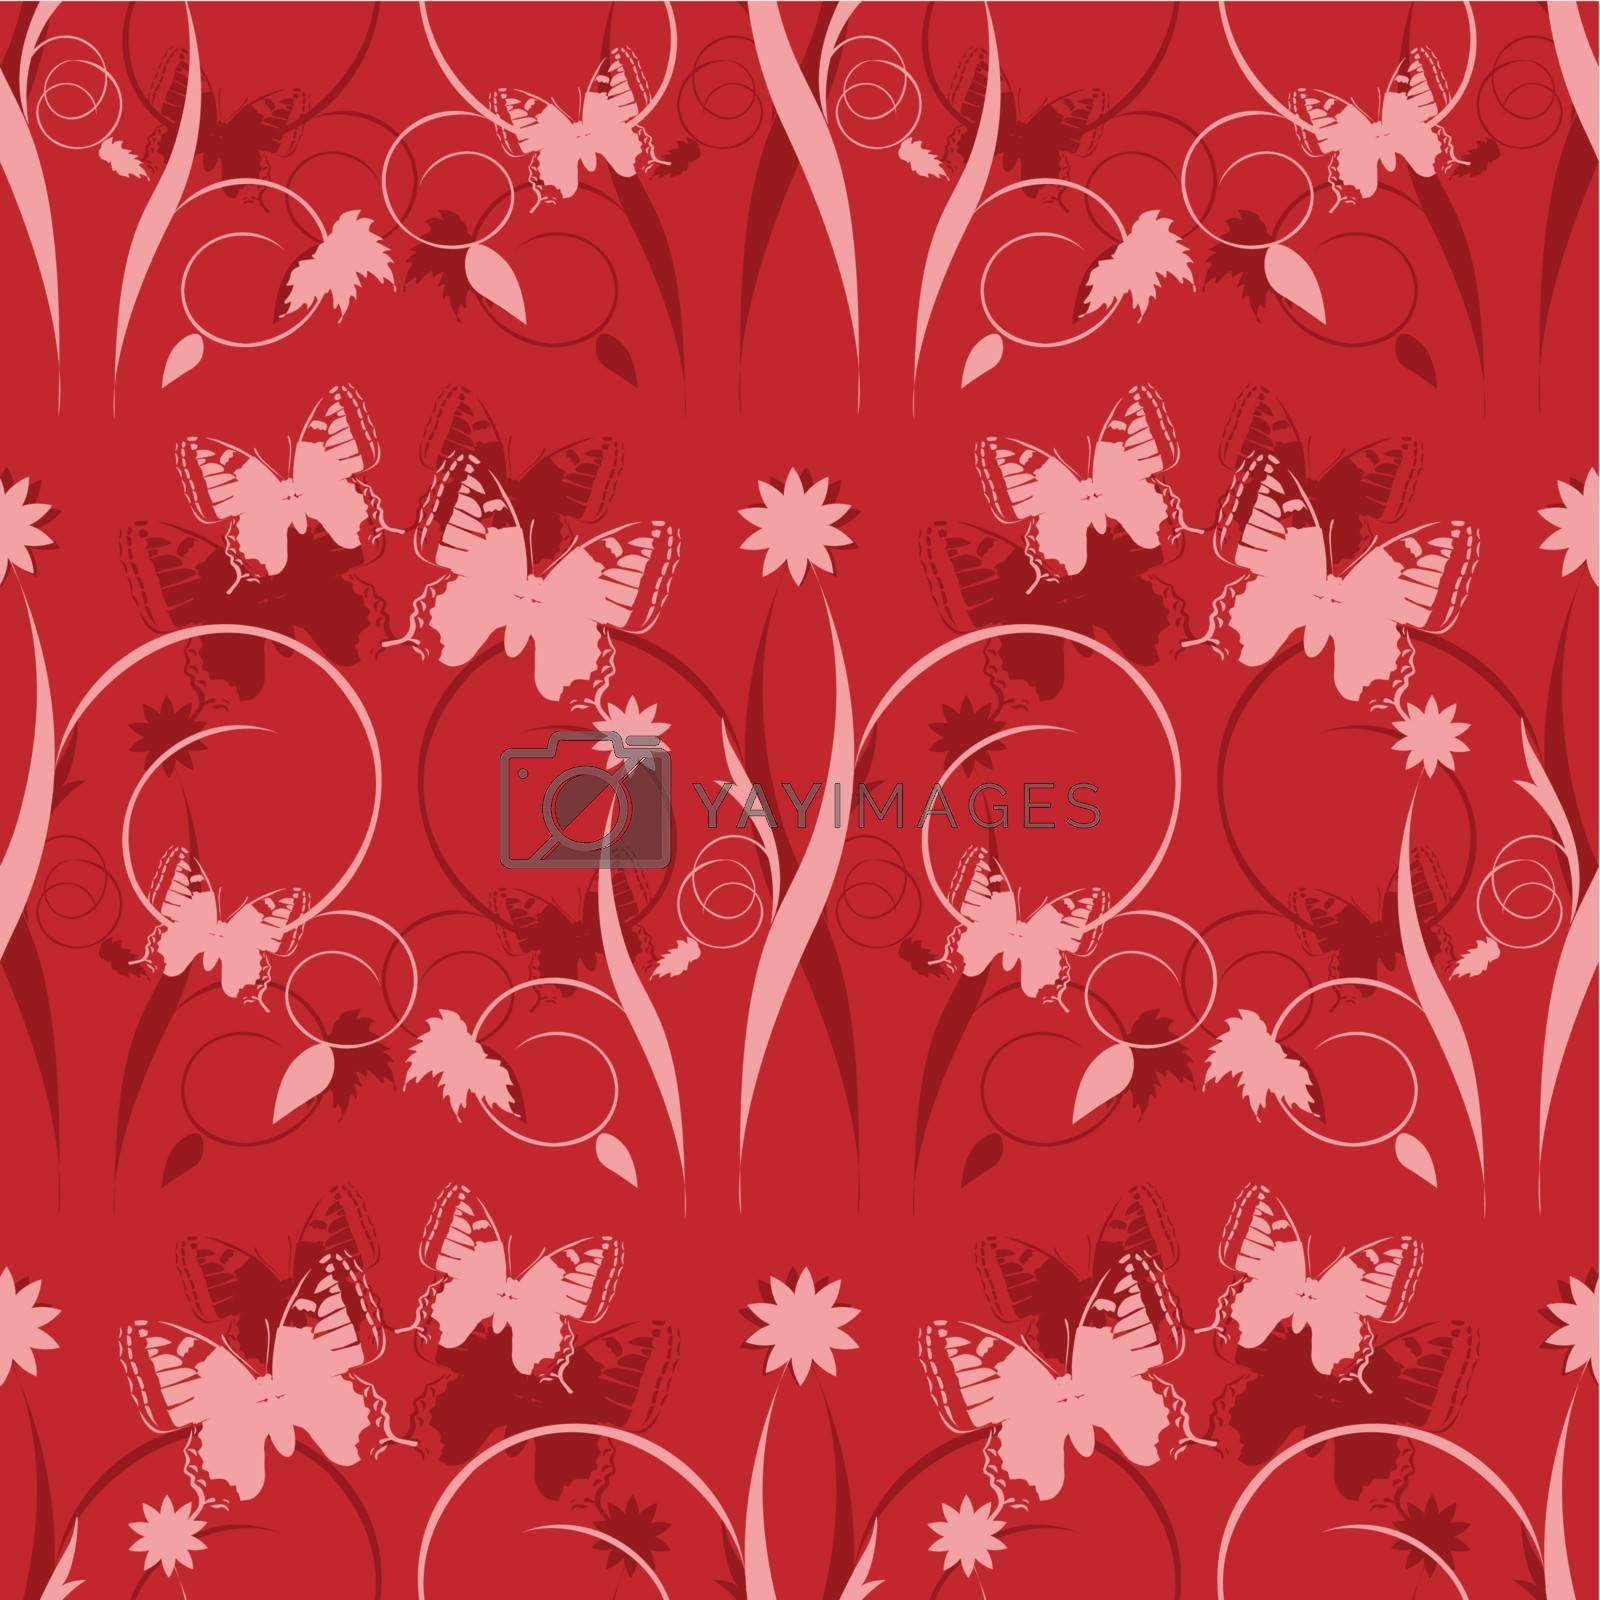 seamless texture rose butterflies on red background